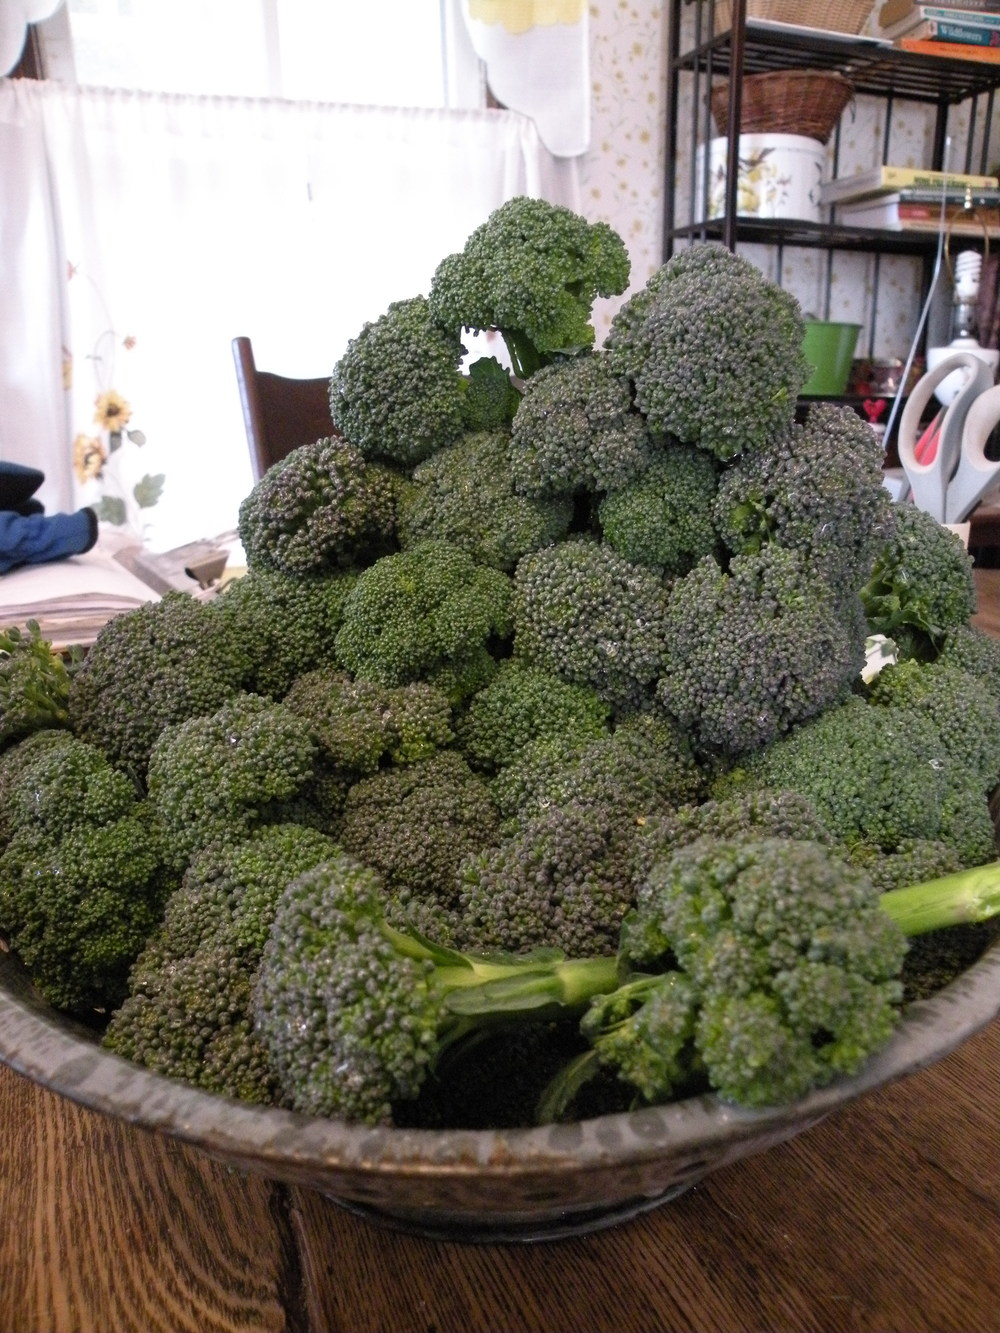 Broccoli Mt. Harvest High...We enjoyed fresh broccoli for over 15 deliveries.